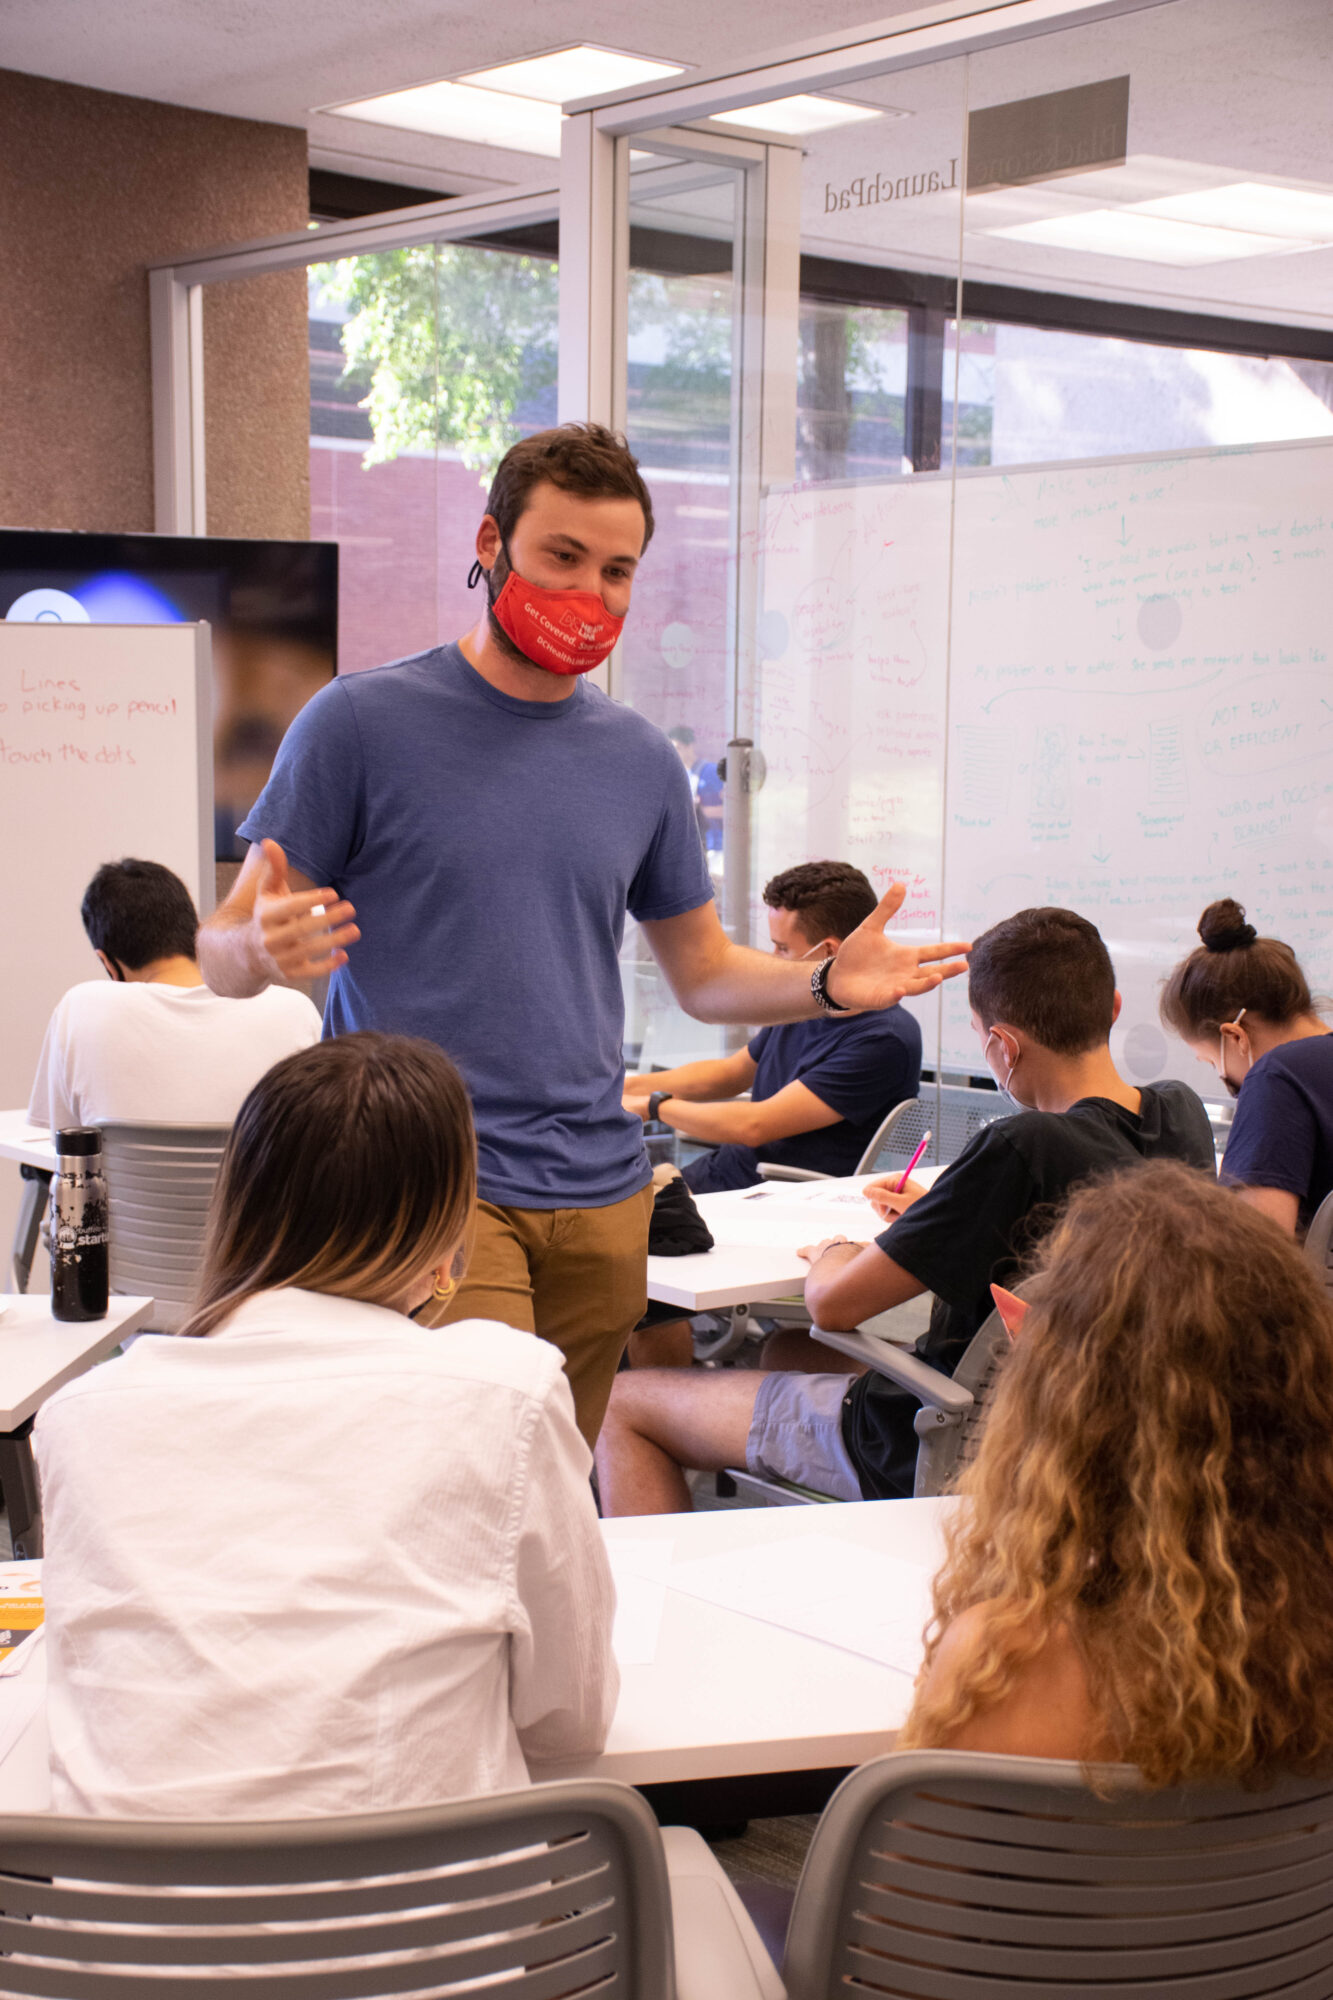 man talking to students in a workshop setting